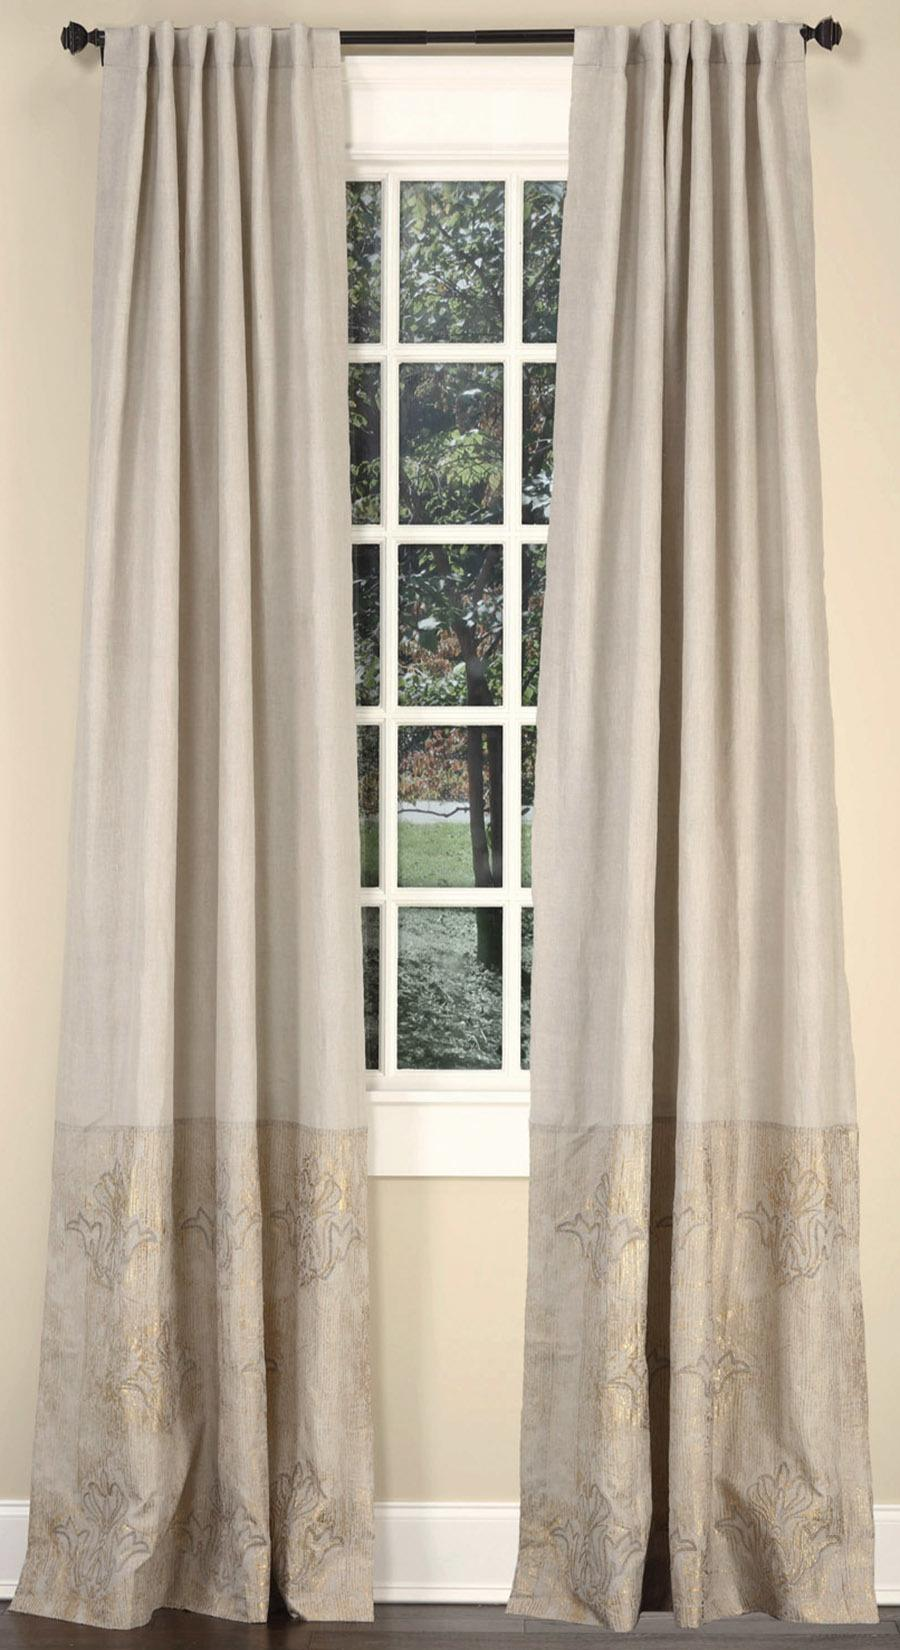 Where Do I Find Extra Long Curtains Online  My Decorating Tips